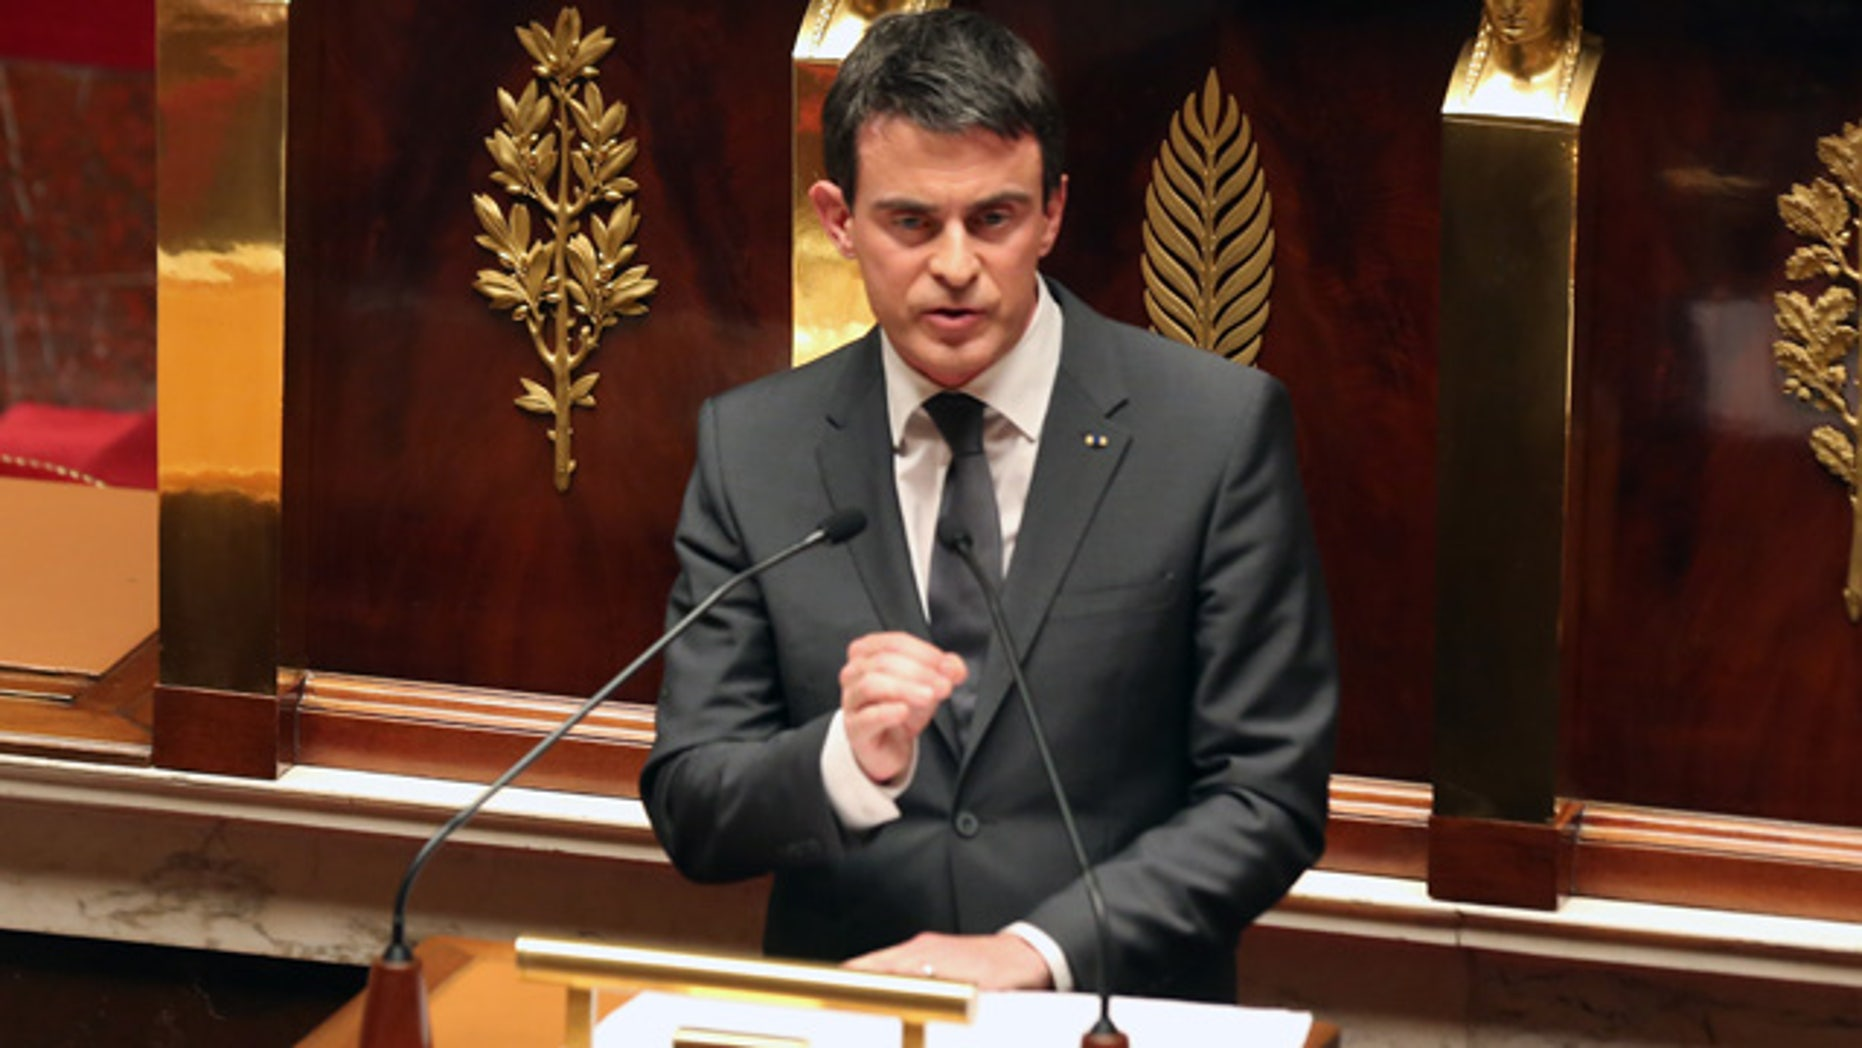 Jan. 13, 2015: French prime minister Manuel Valls delivers his speech during a homage to the 17 victims of last week's terrorist attacks in Paris. (AP Photo/Remy de la Mauviniere)